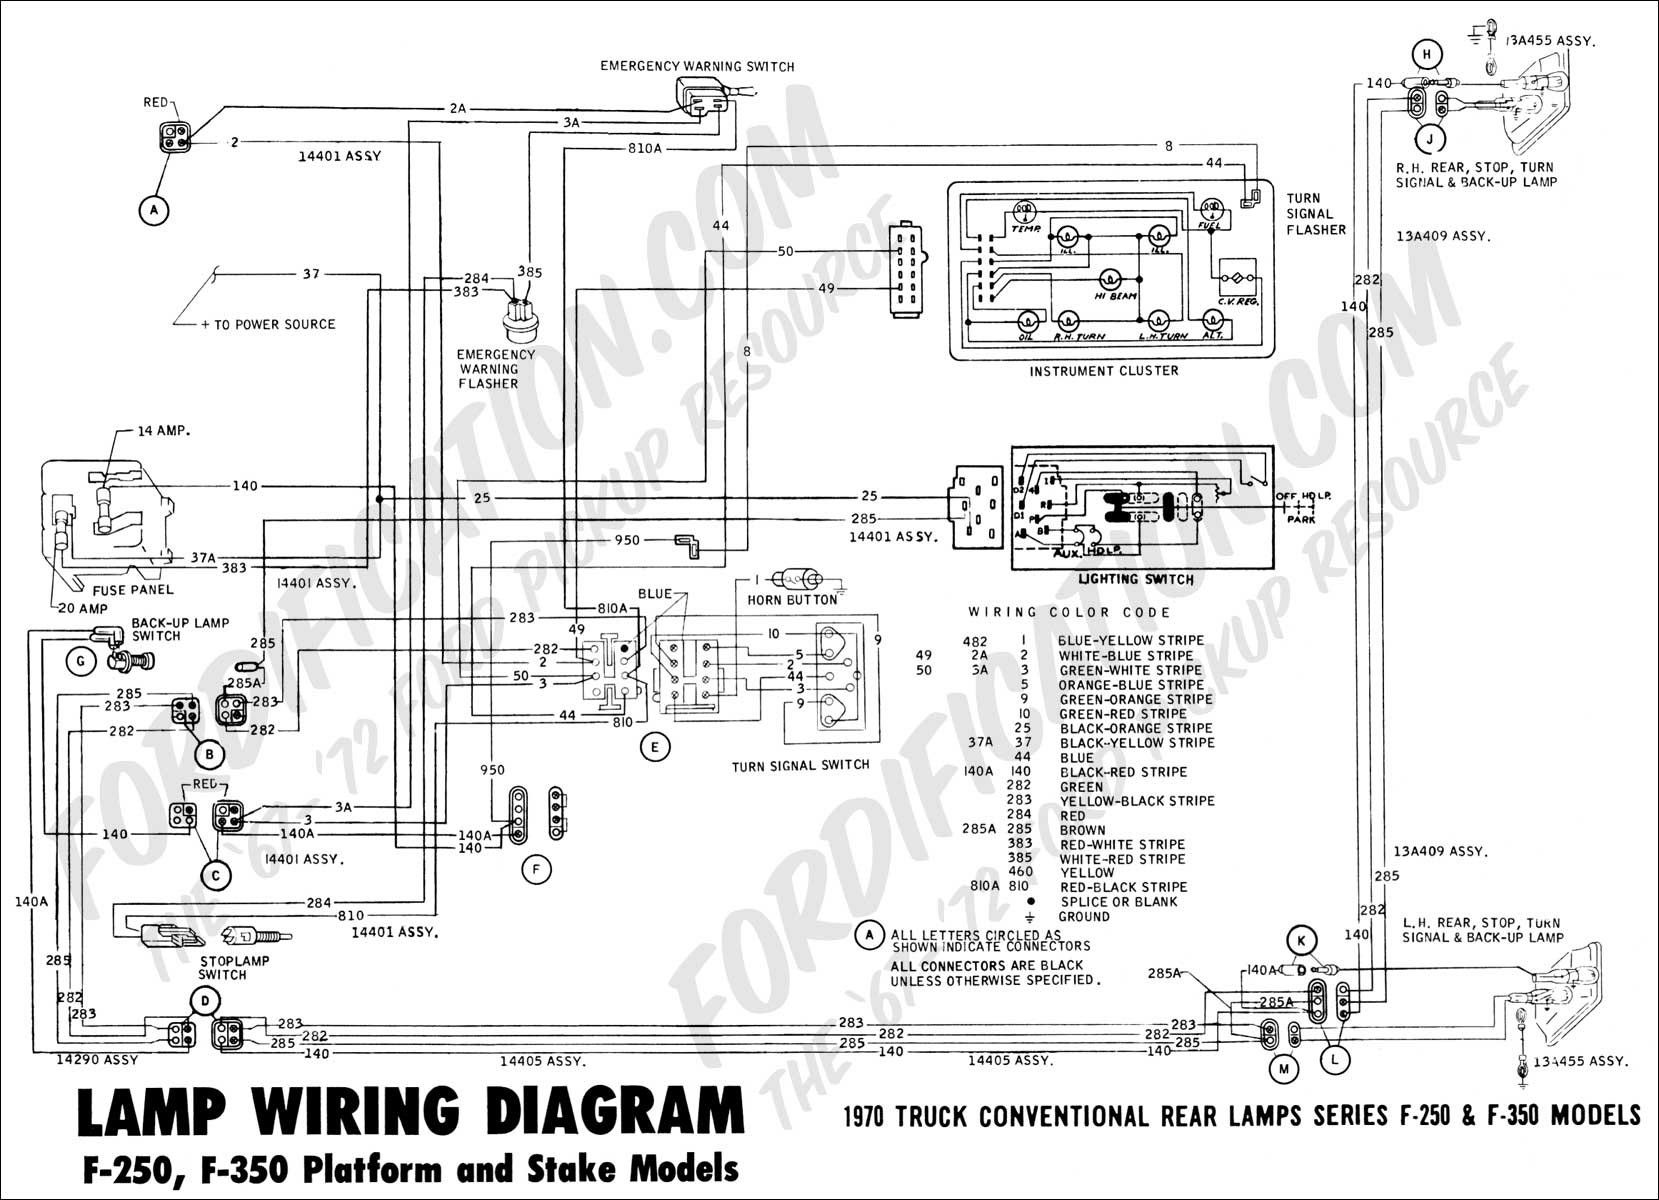 Ford Truck Technical Drawings And Schematics - Section H - Wiring inside Ford  F250 Wiring Diagram | Ford lightning, Diagram, Ford f250Pinterest